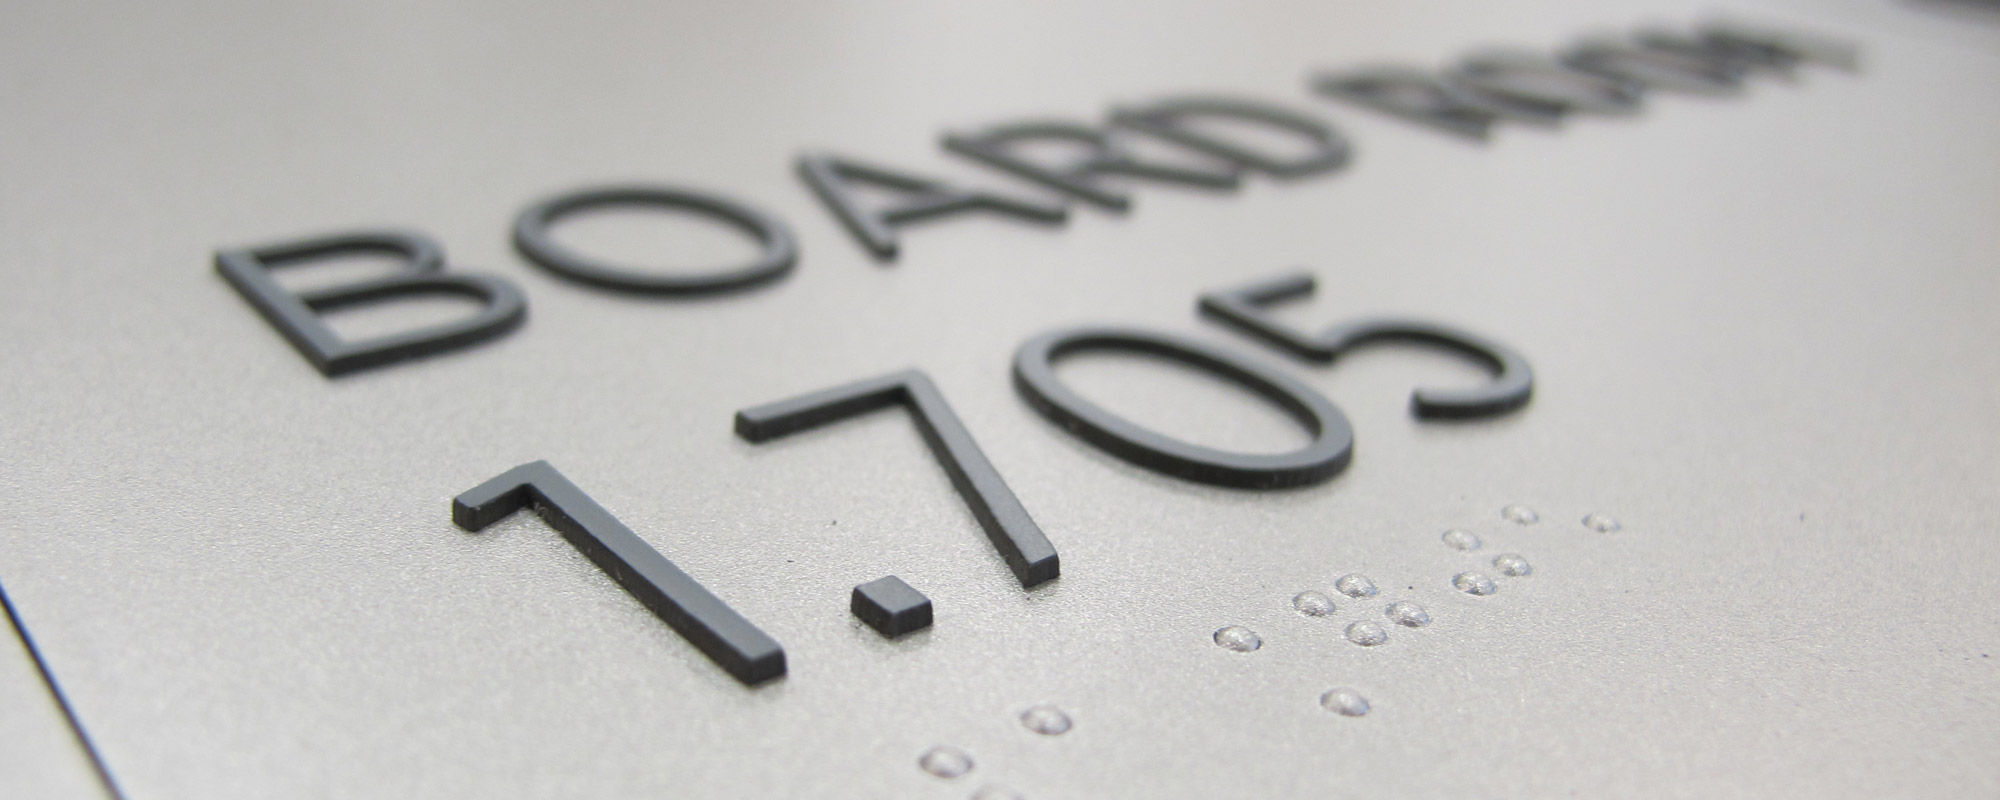 Closeup image of tactile copy and Braille on ADA sign